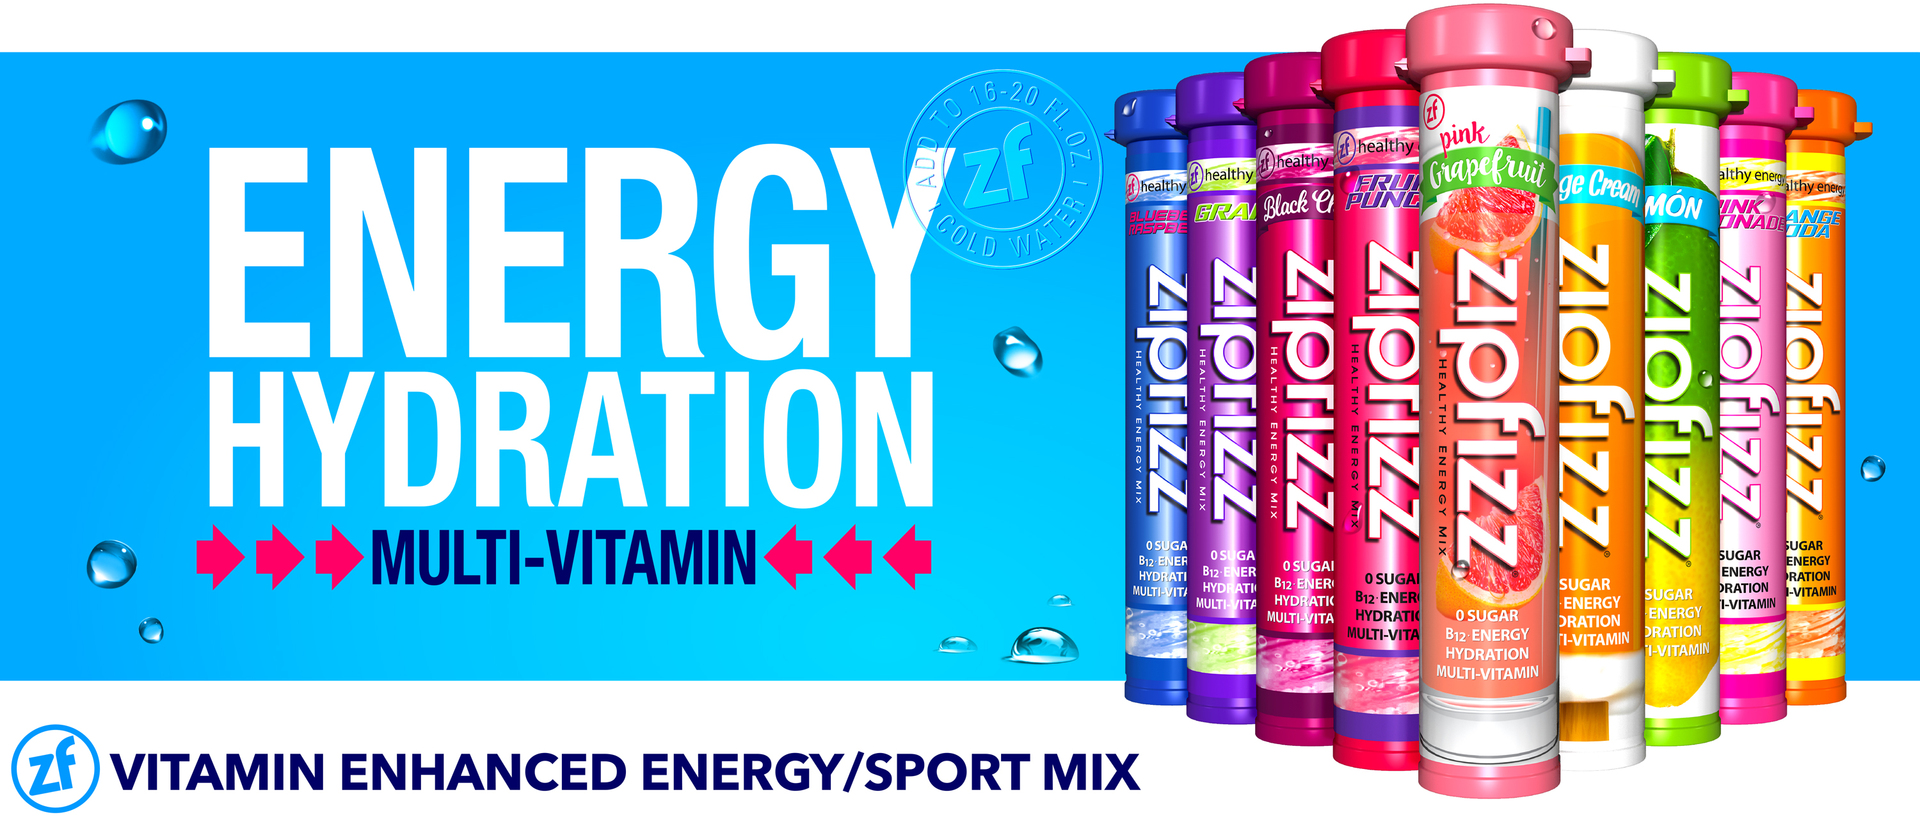 Zipfizz® Healthy Energy Drink Mix